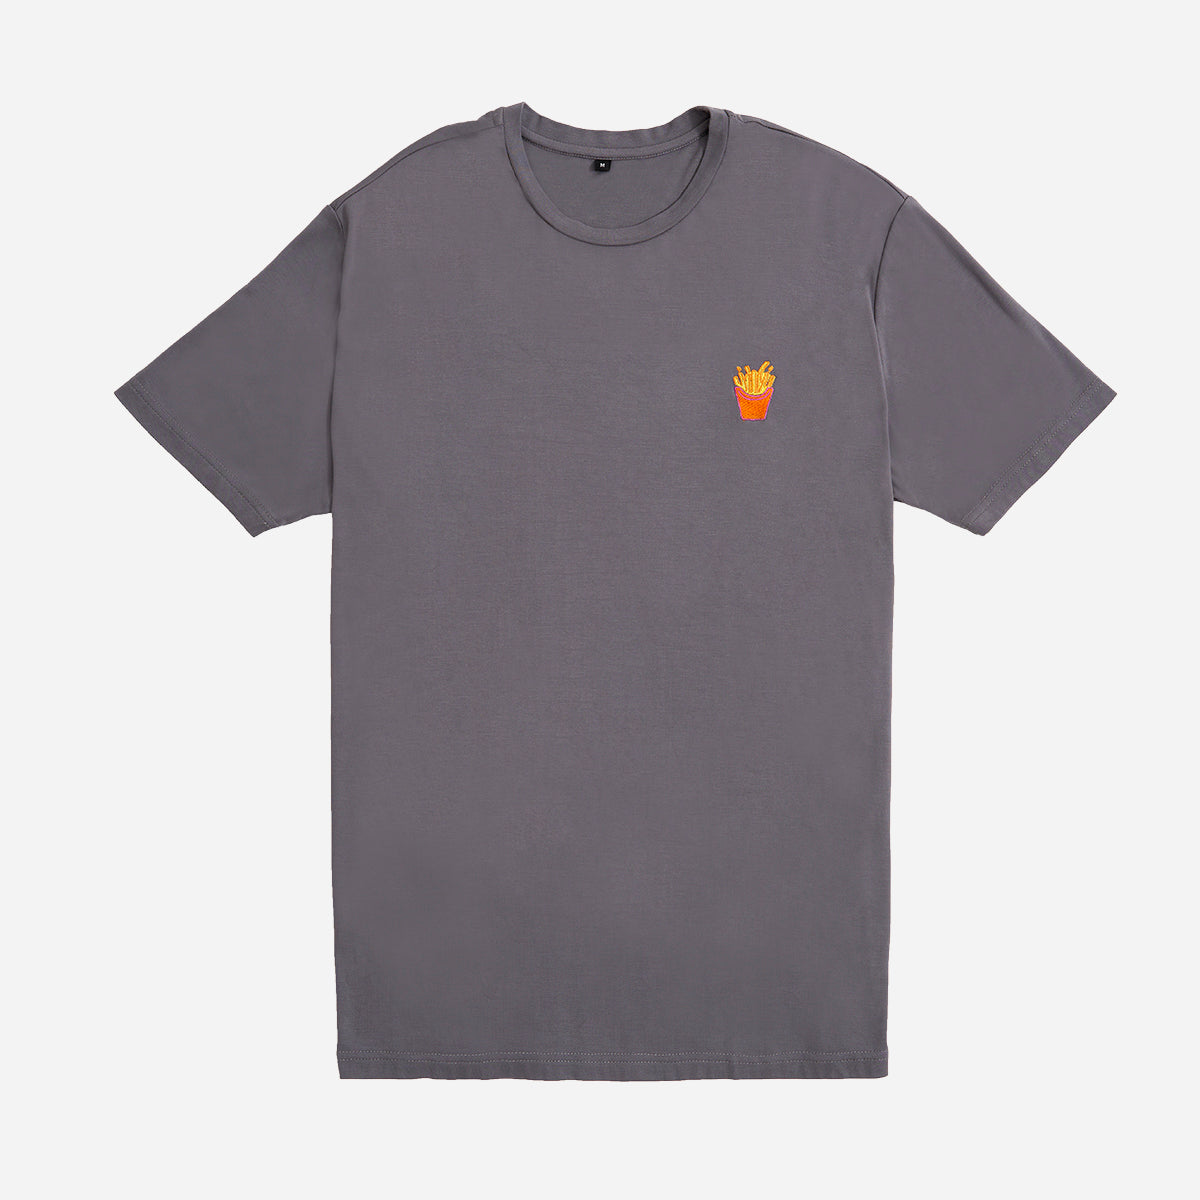 Fries Signature Bamboo T-shirt 2.0